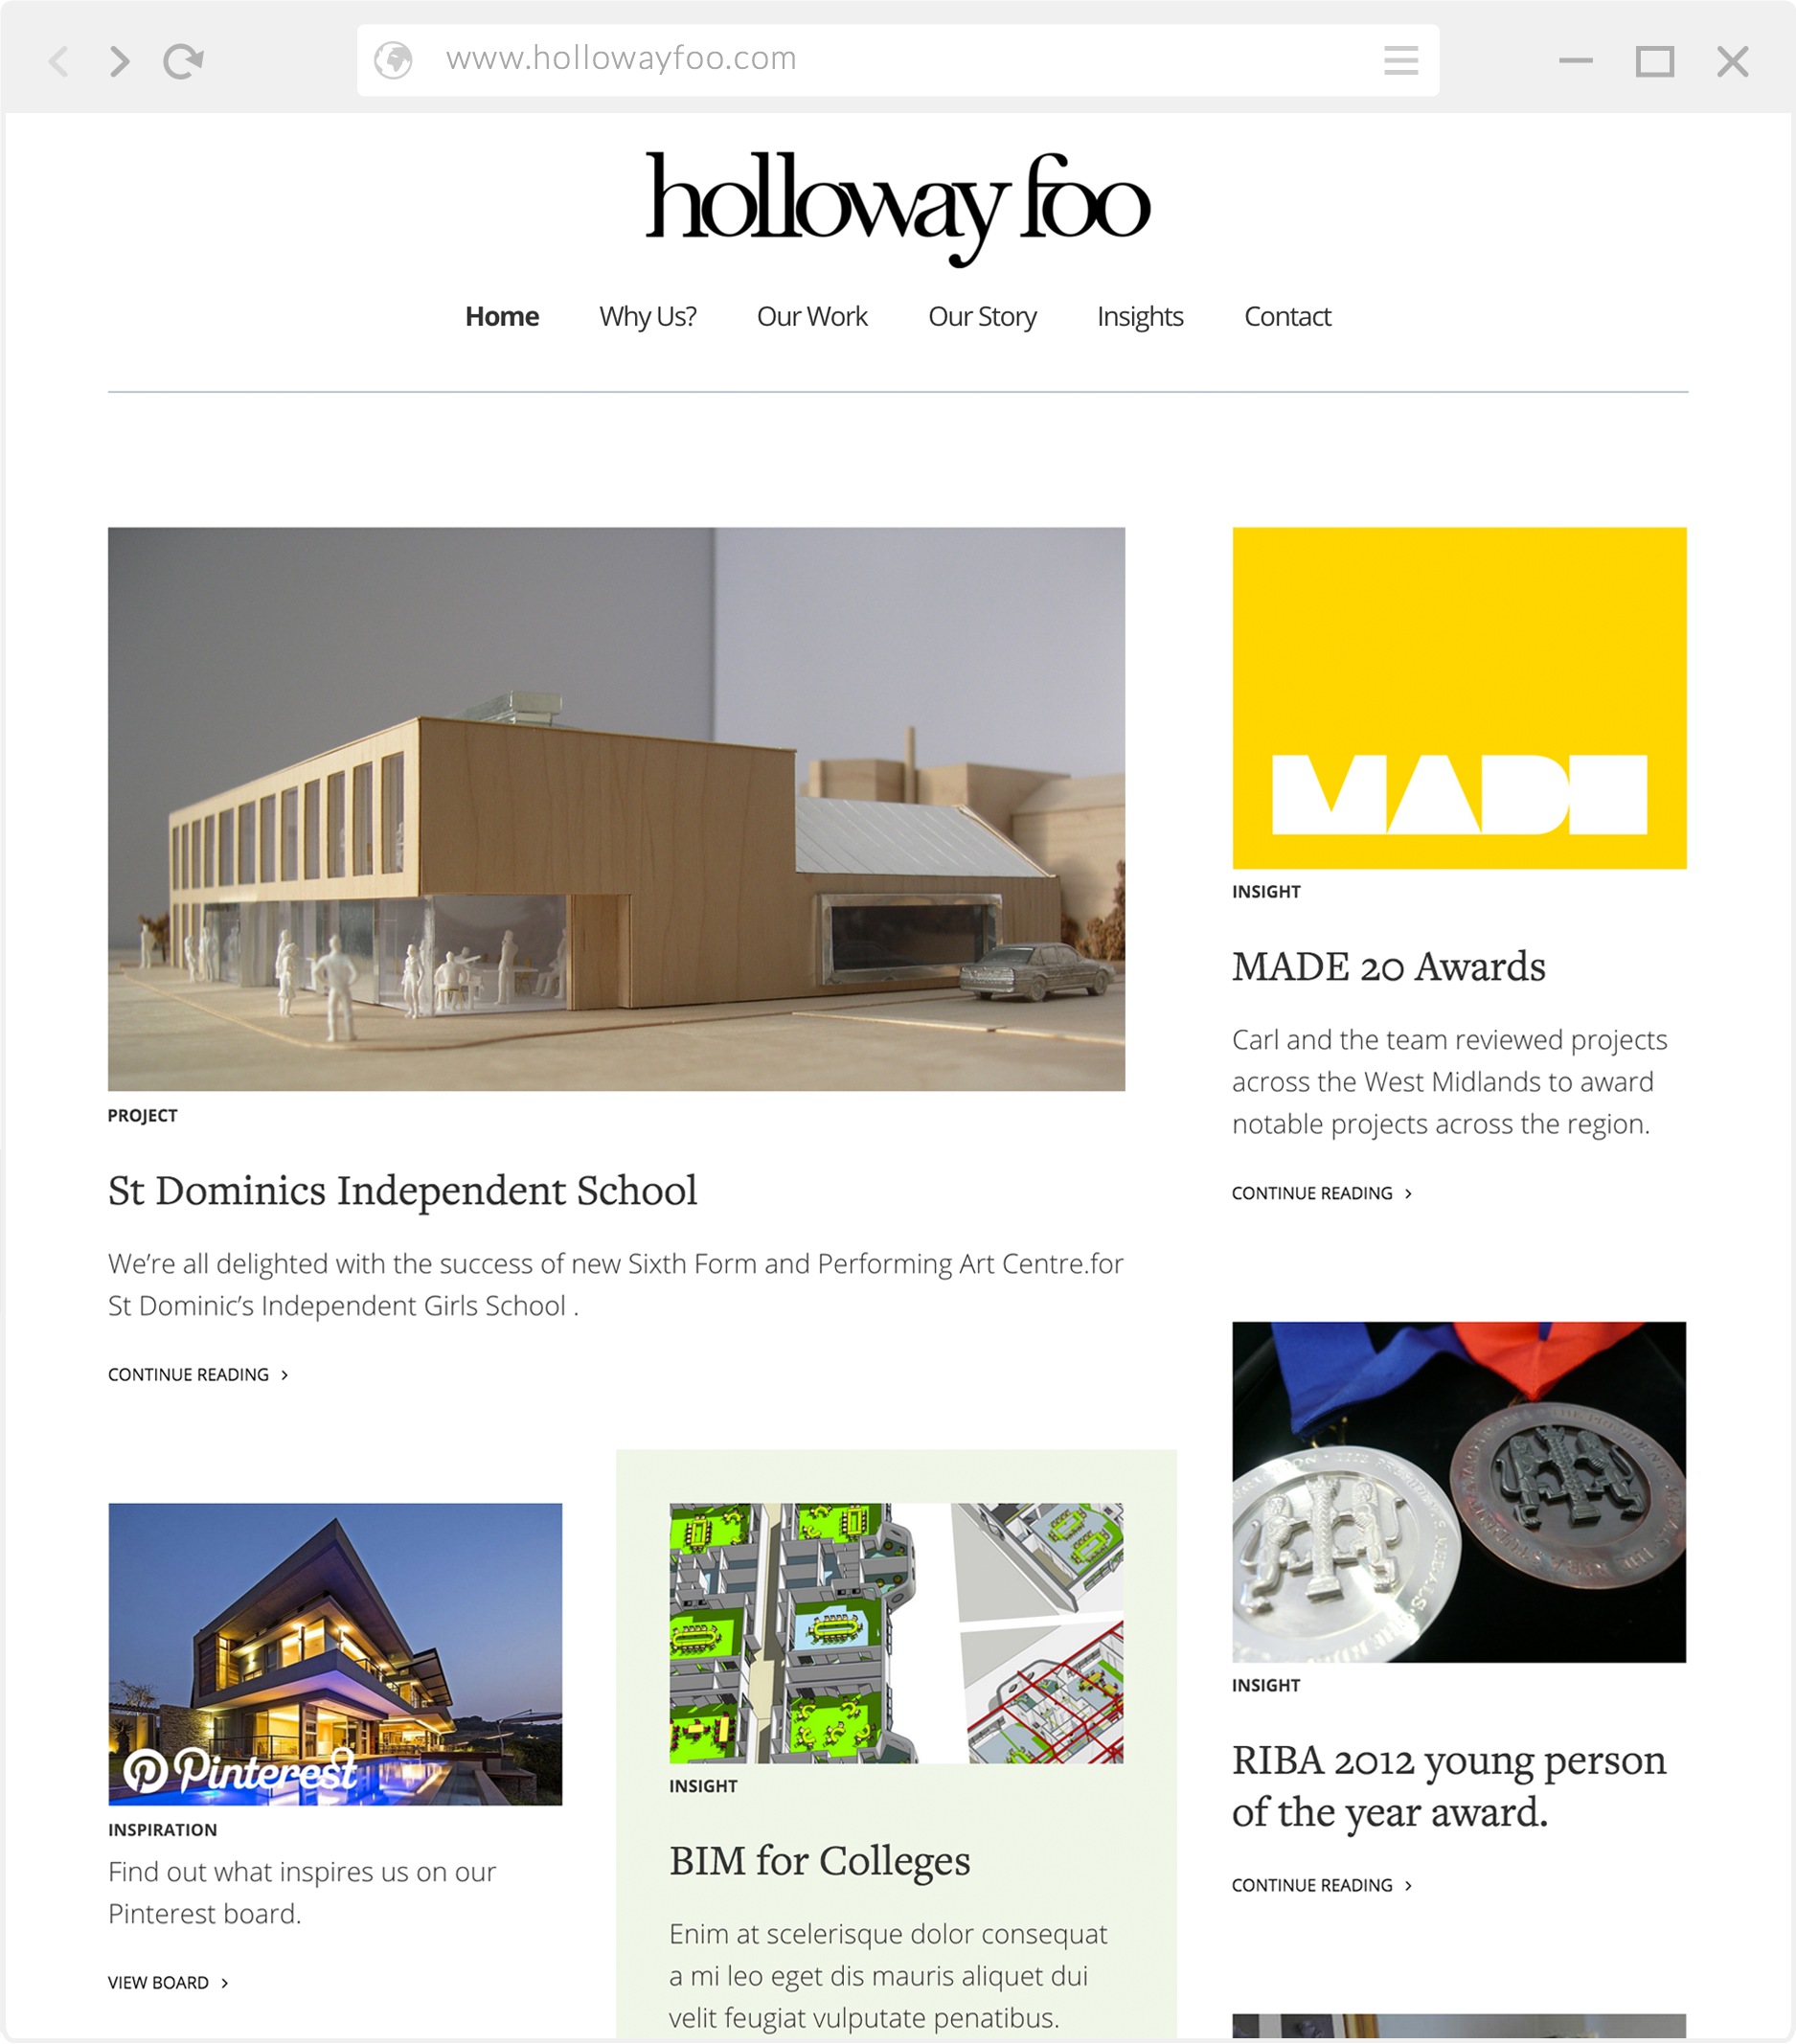 HollowayFoo website home page